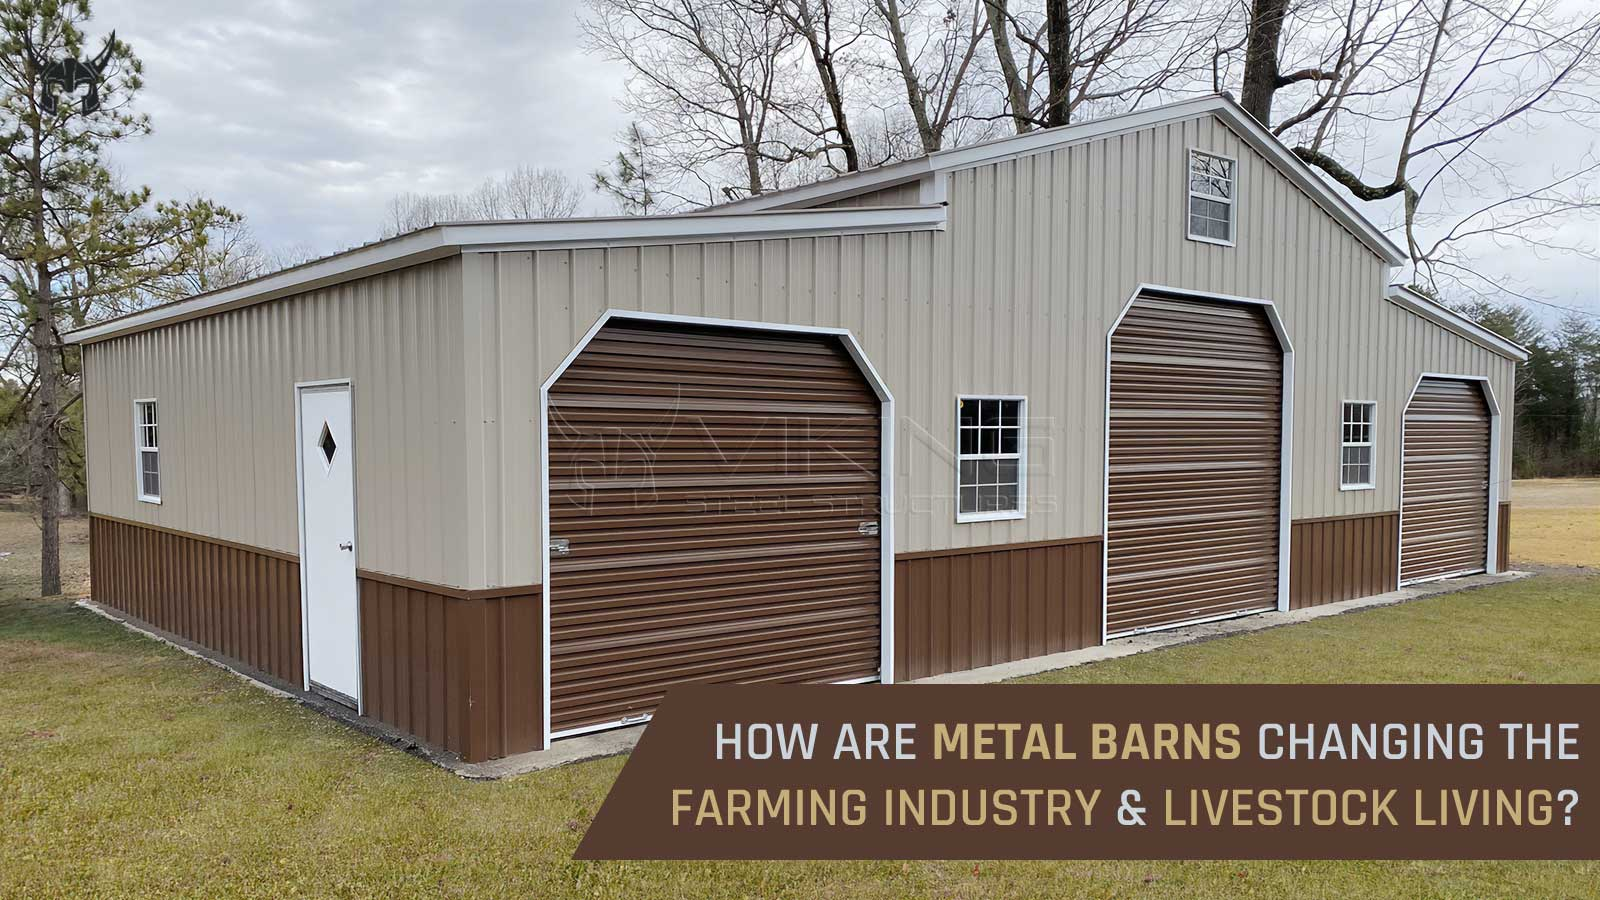 How are Metal Barns Changing the Farming Industry and Livestock Living?